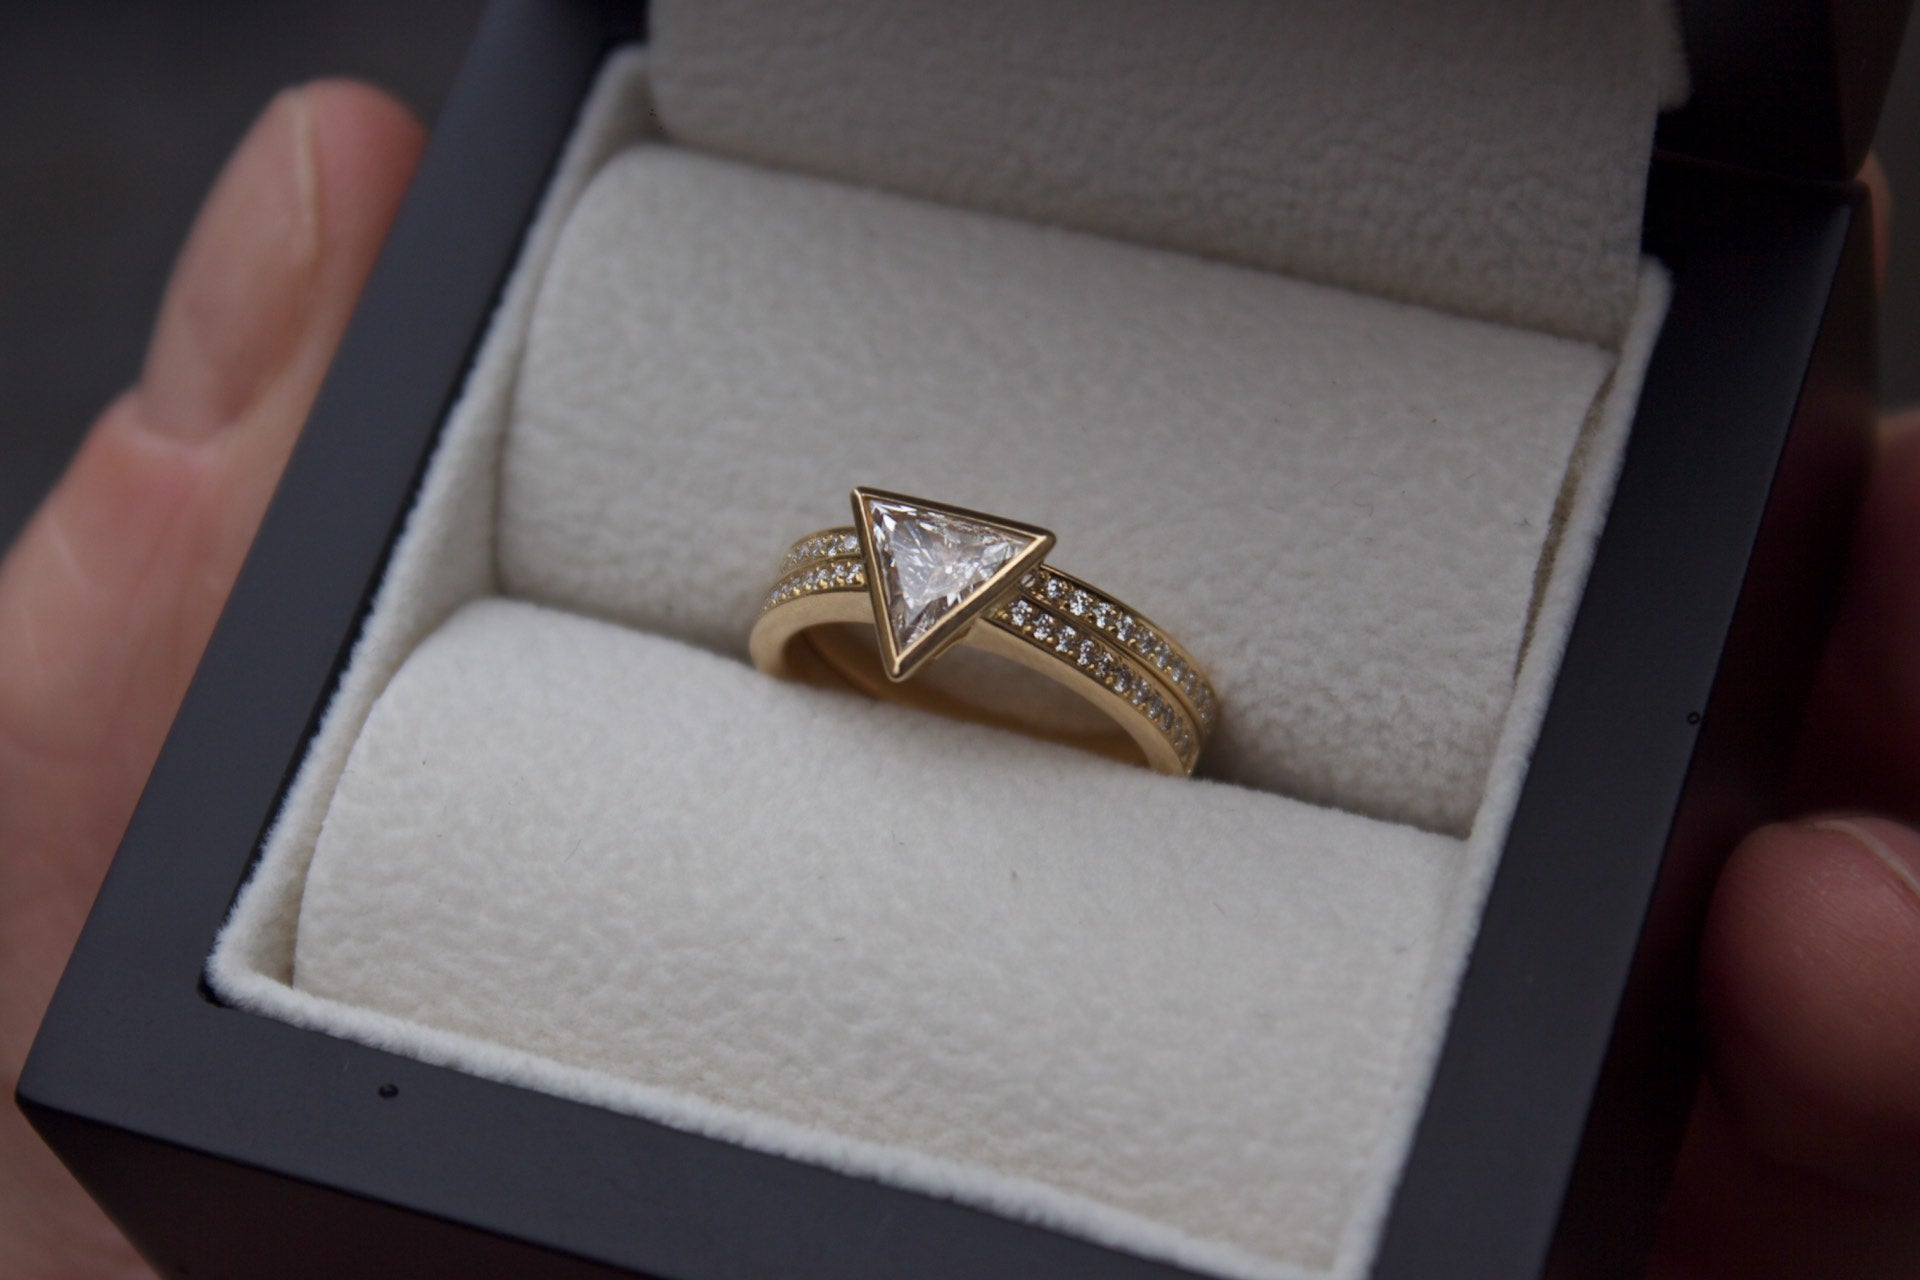 Moira Patience Fine Jewellery Bespoke Commission Handmade Diamond Wedding Band and Triangle Diamond Engagement Ring in Edinburgh